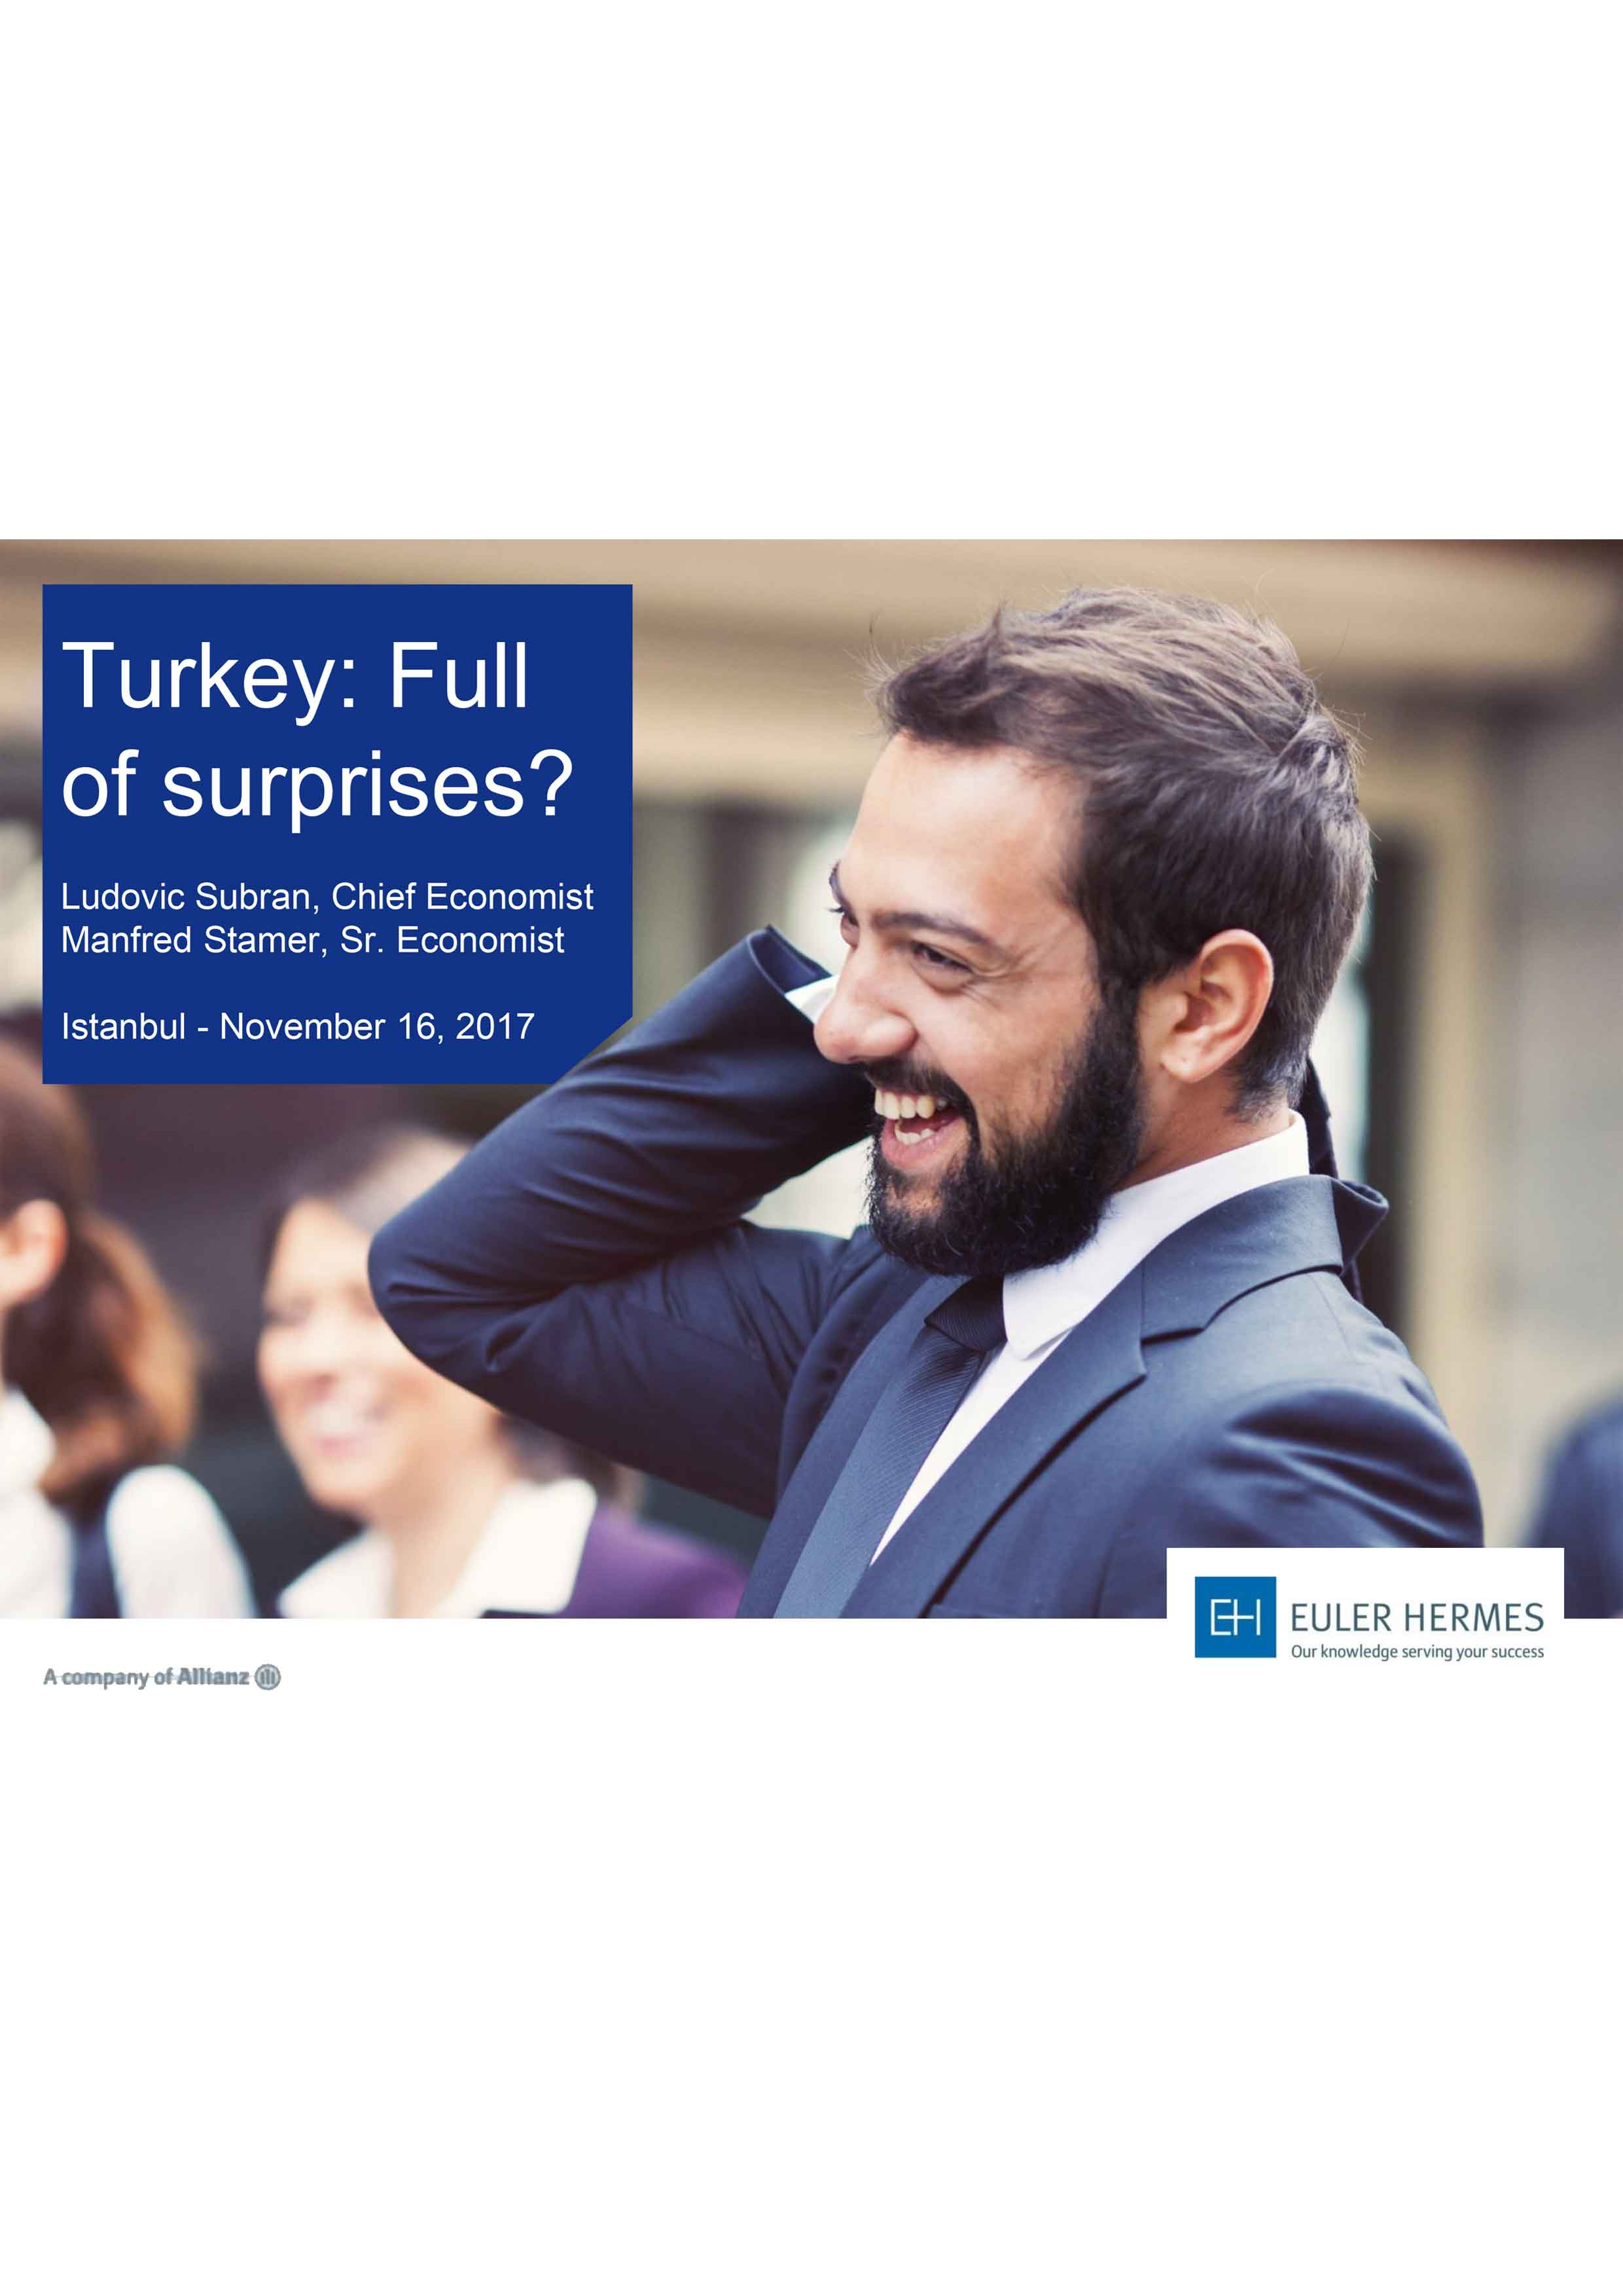 Turkey: full of surprises?